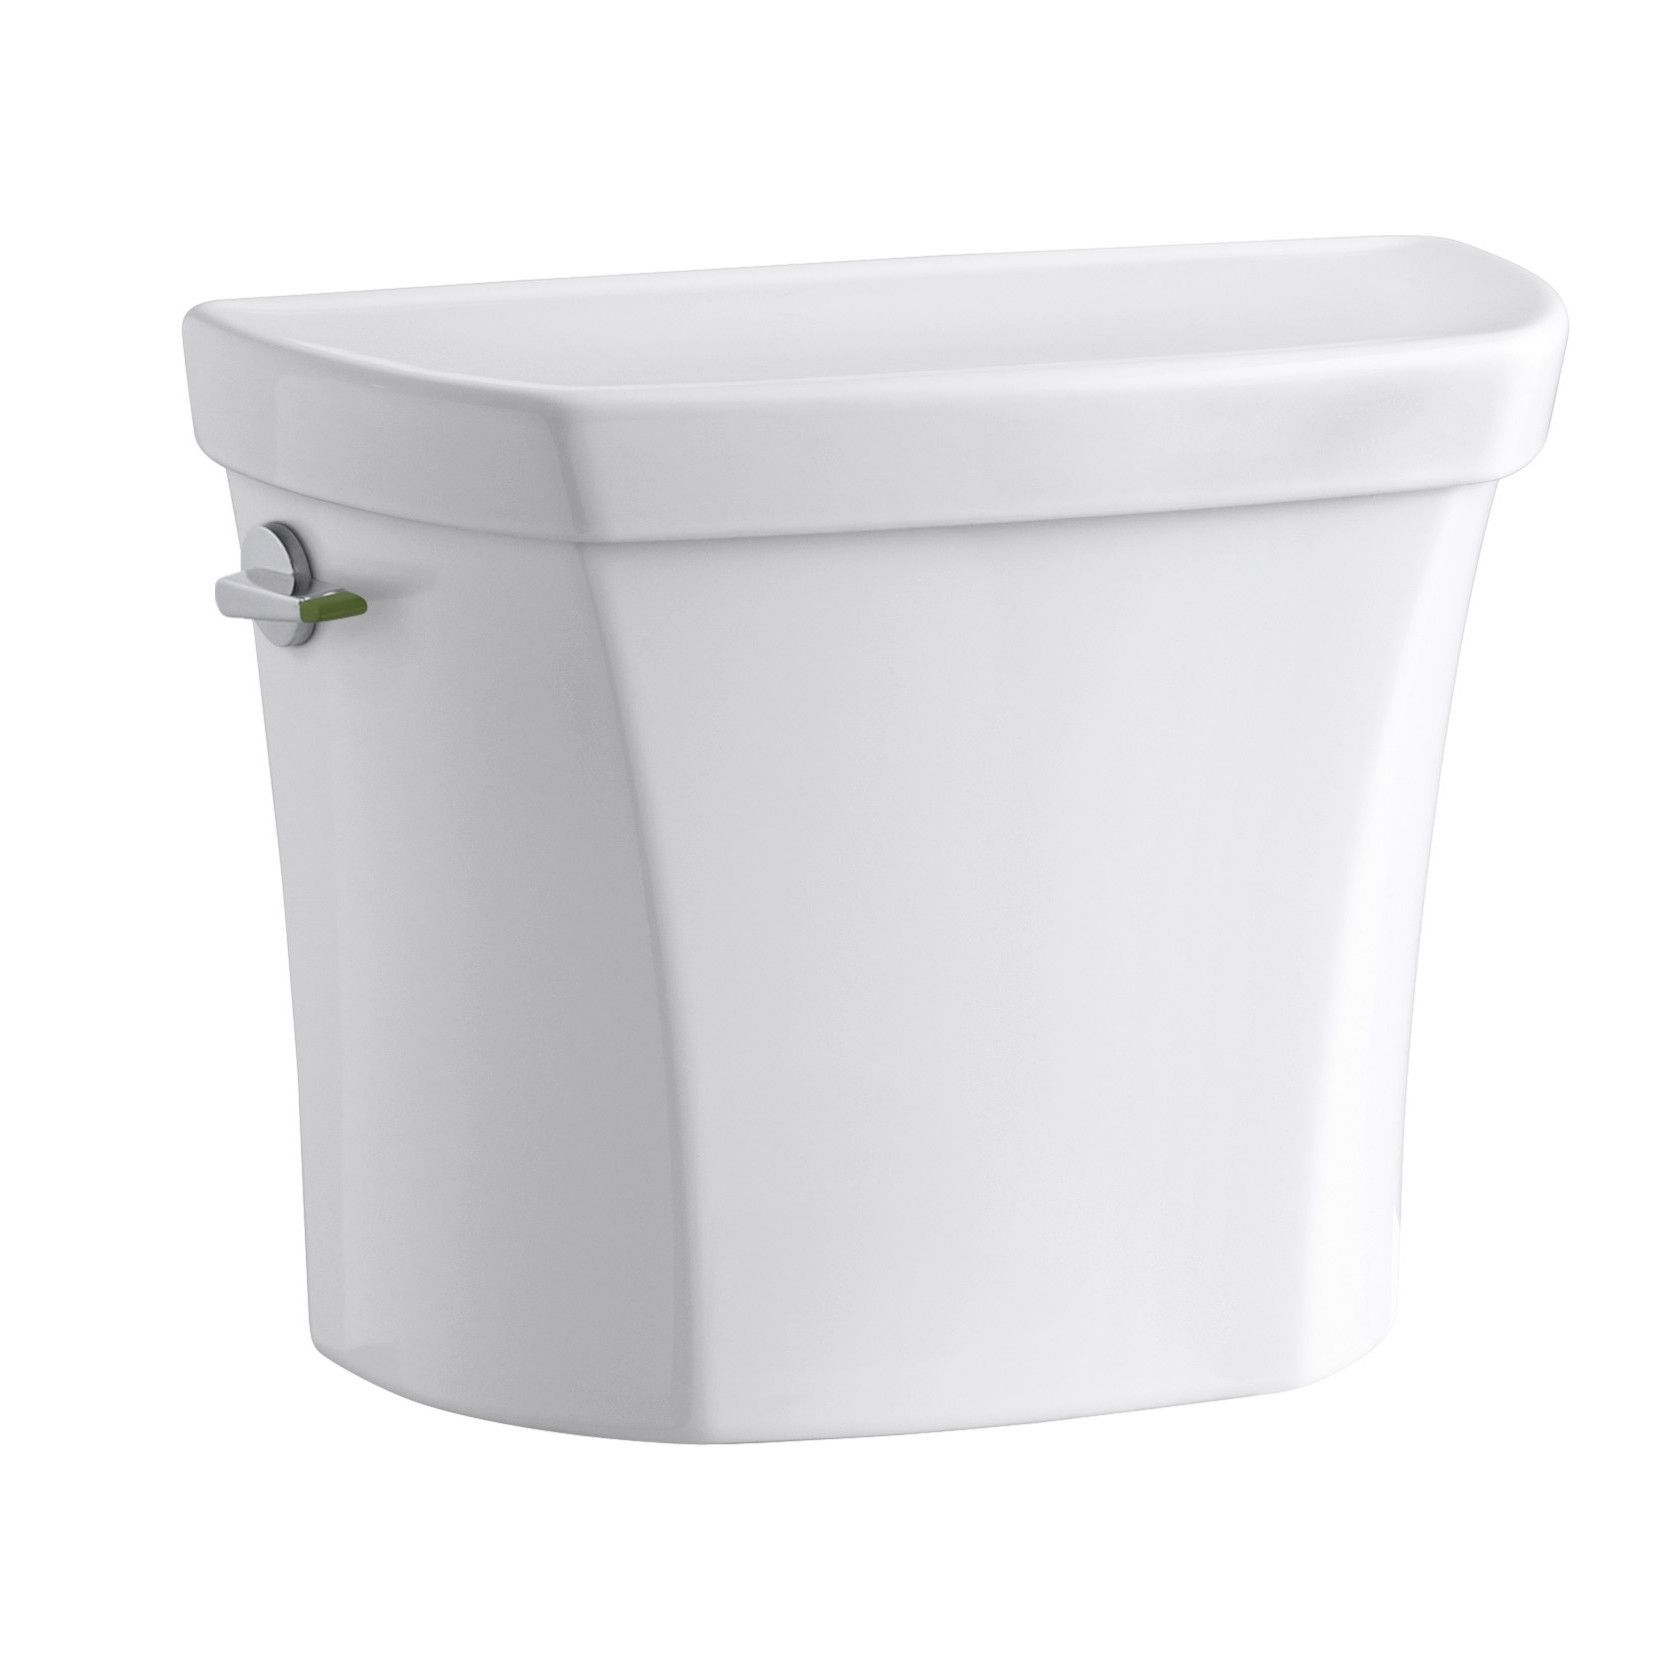 Wellworth Dual-Flush Tank | Products | Pinterest | Products